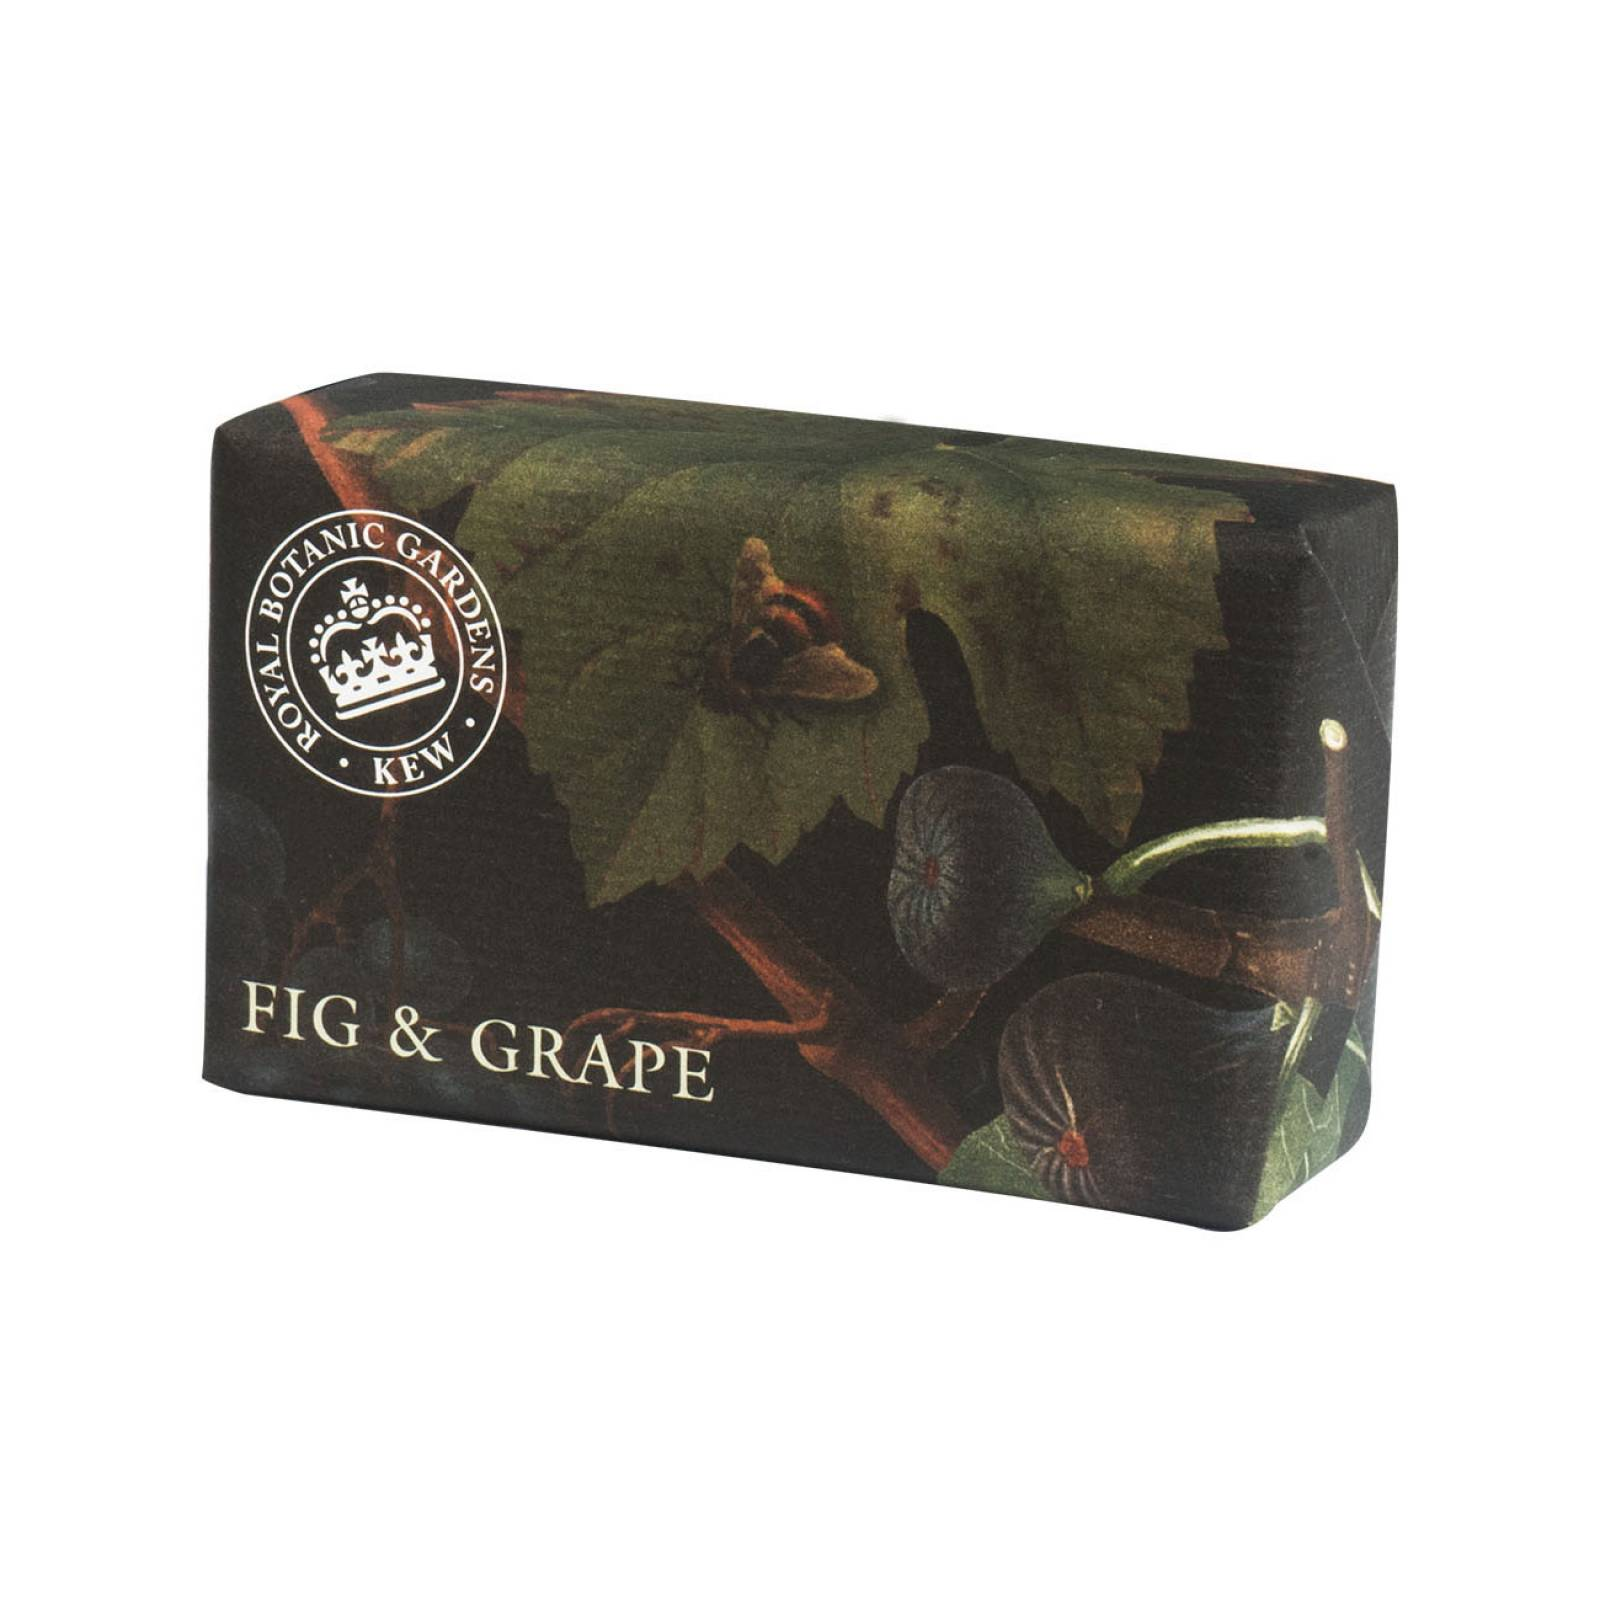 Fig & Grape Kew Gardens Soap 240g thumbnails